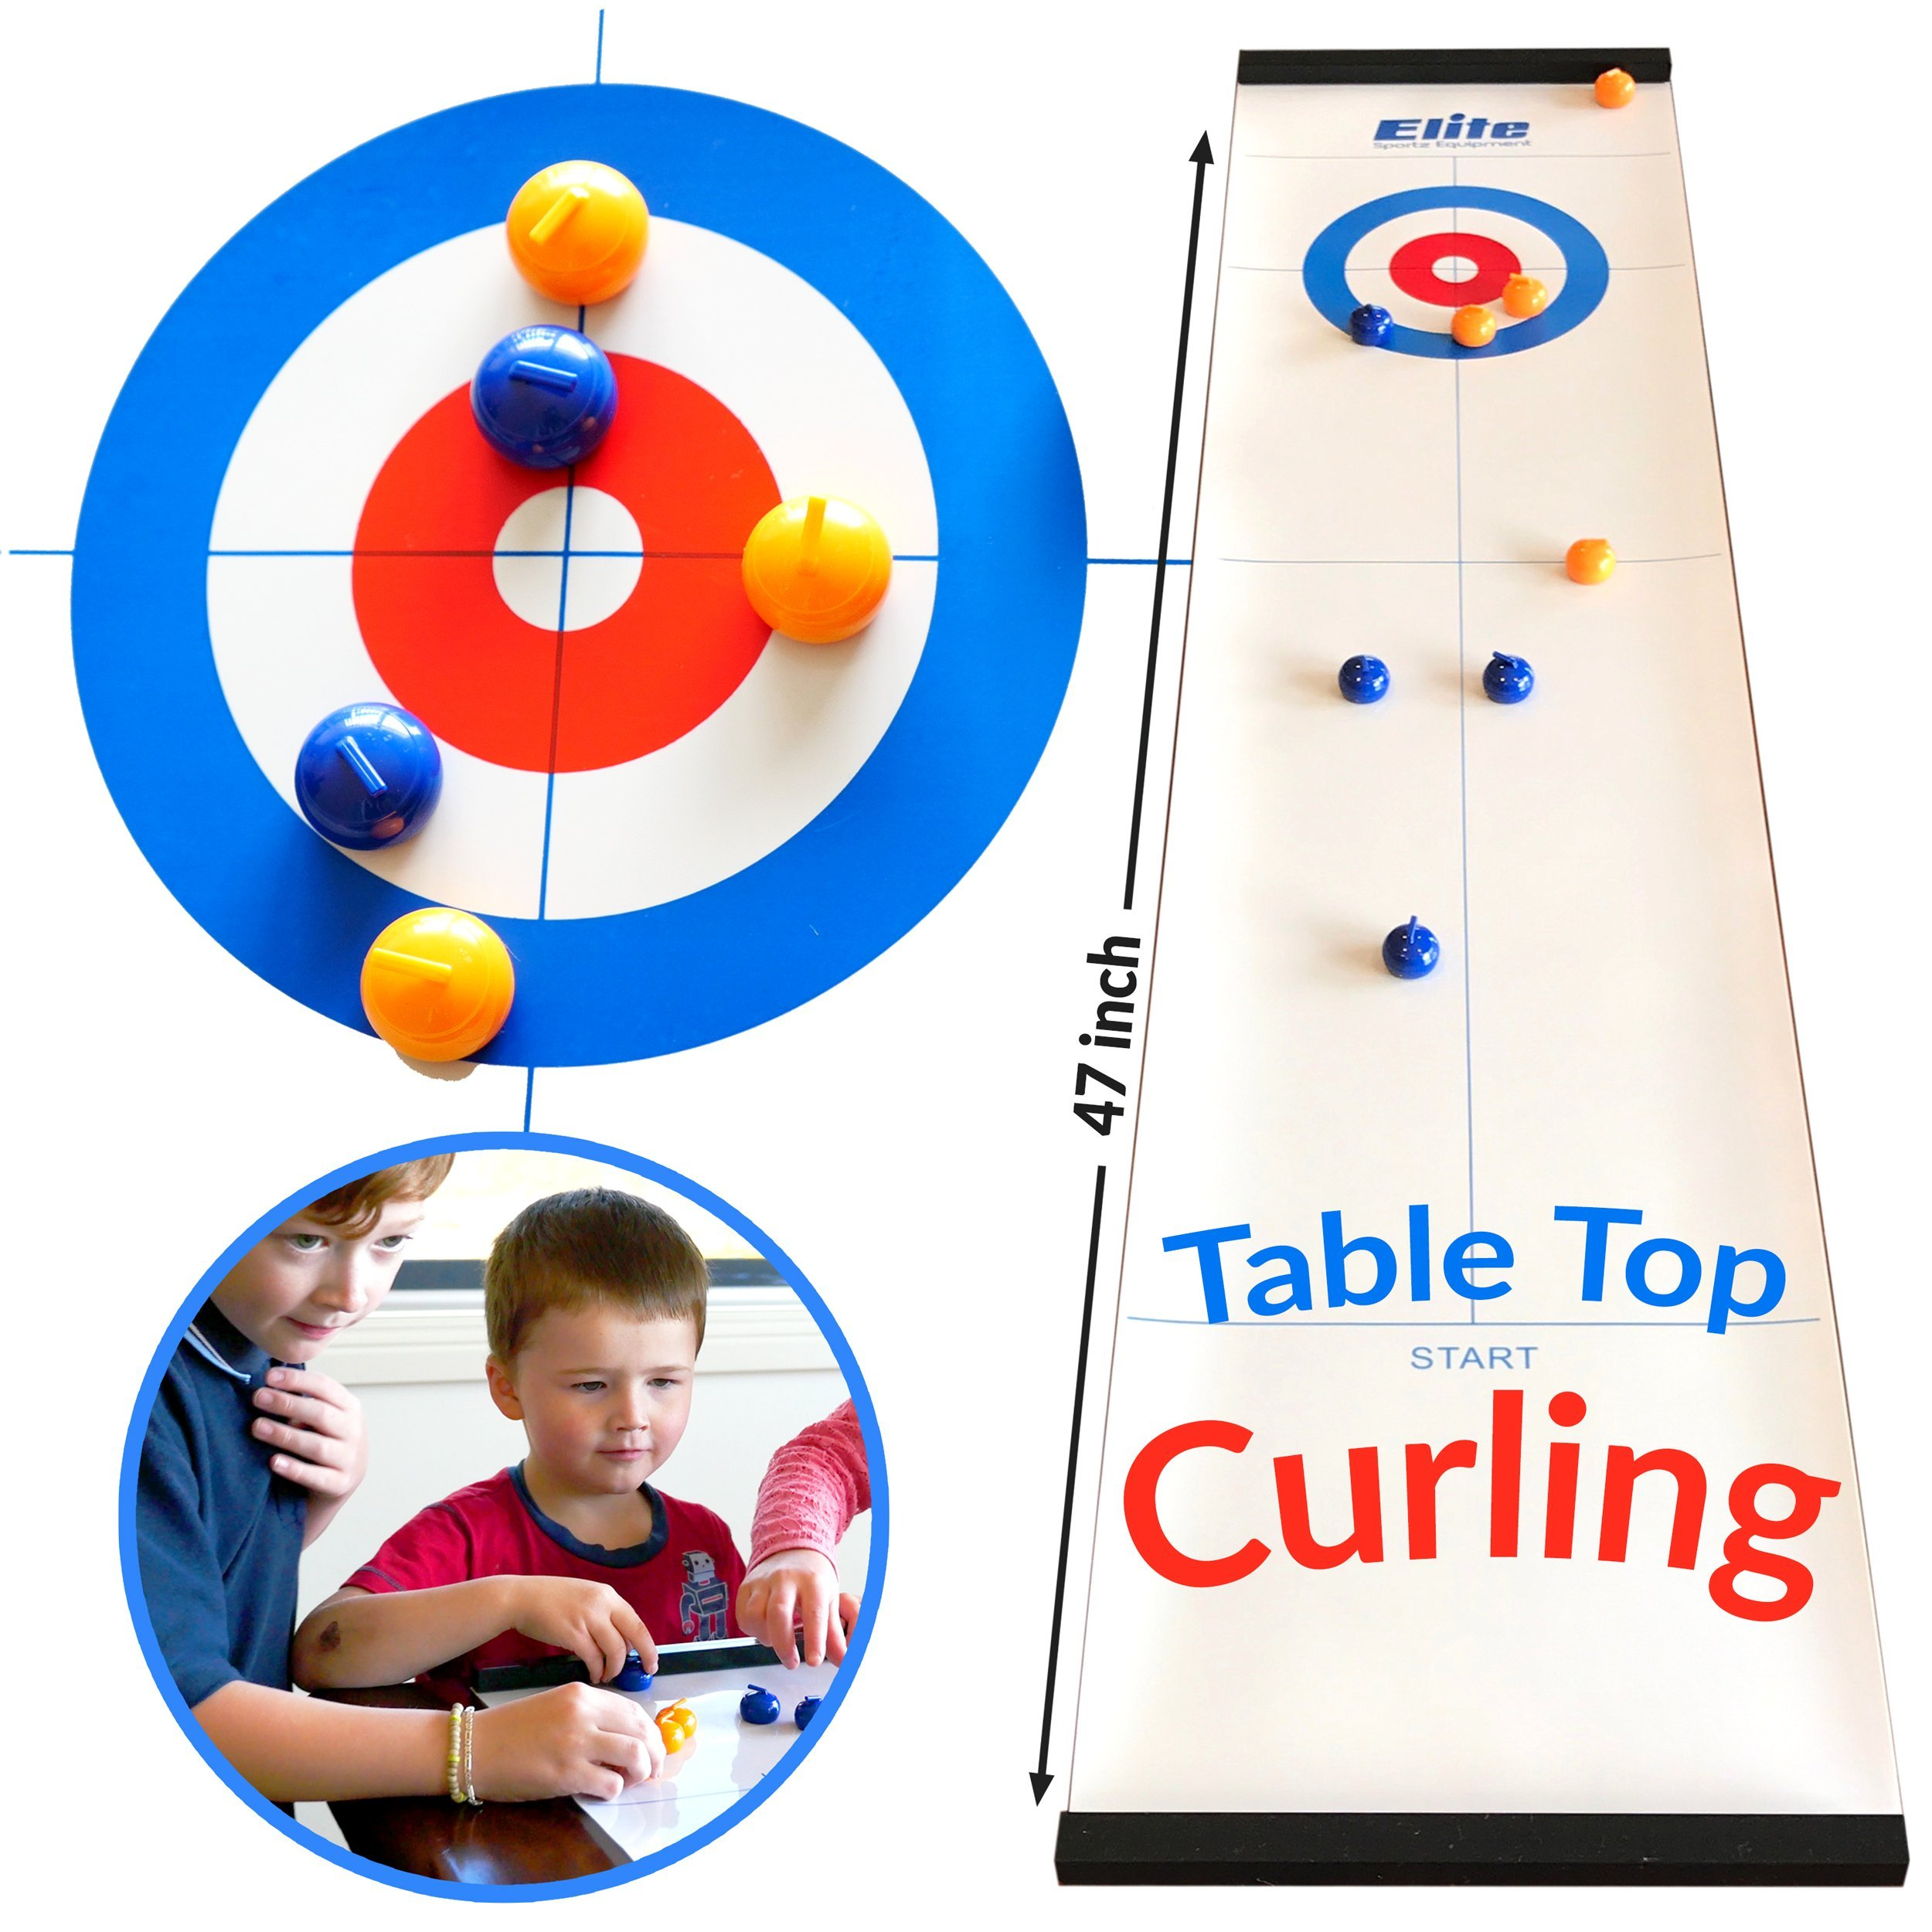 Table Top Curling Game or Bowling Game - 2 Fun Family Games for Adults or Kids. It's Way More Fun Than it Looks, Quick and Easy to Set-Up and So Compact for Storage, Fun Games for Teens (Curling Game)